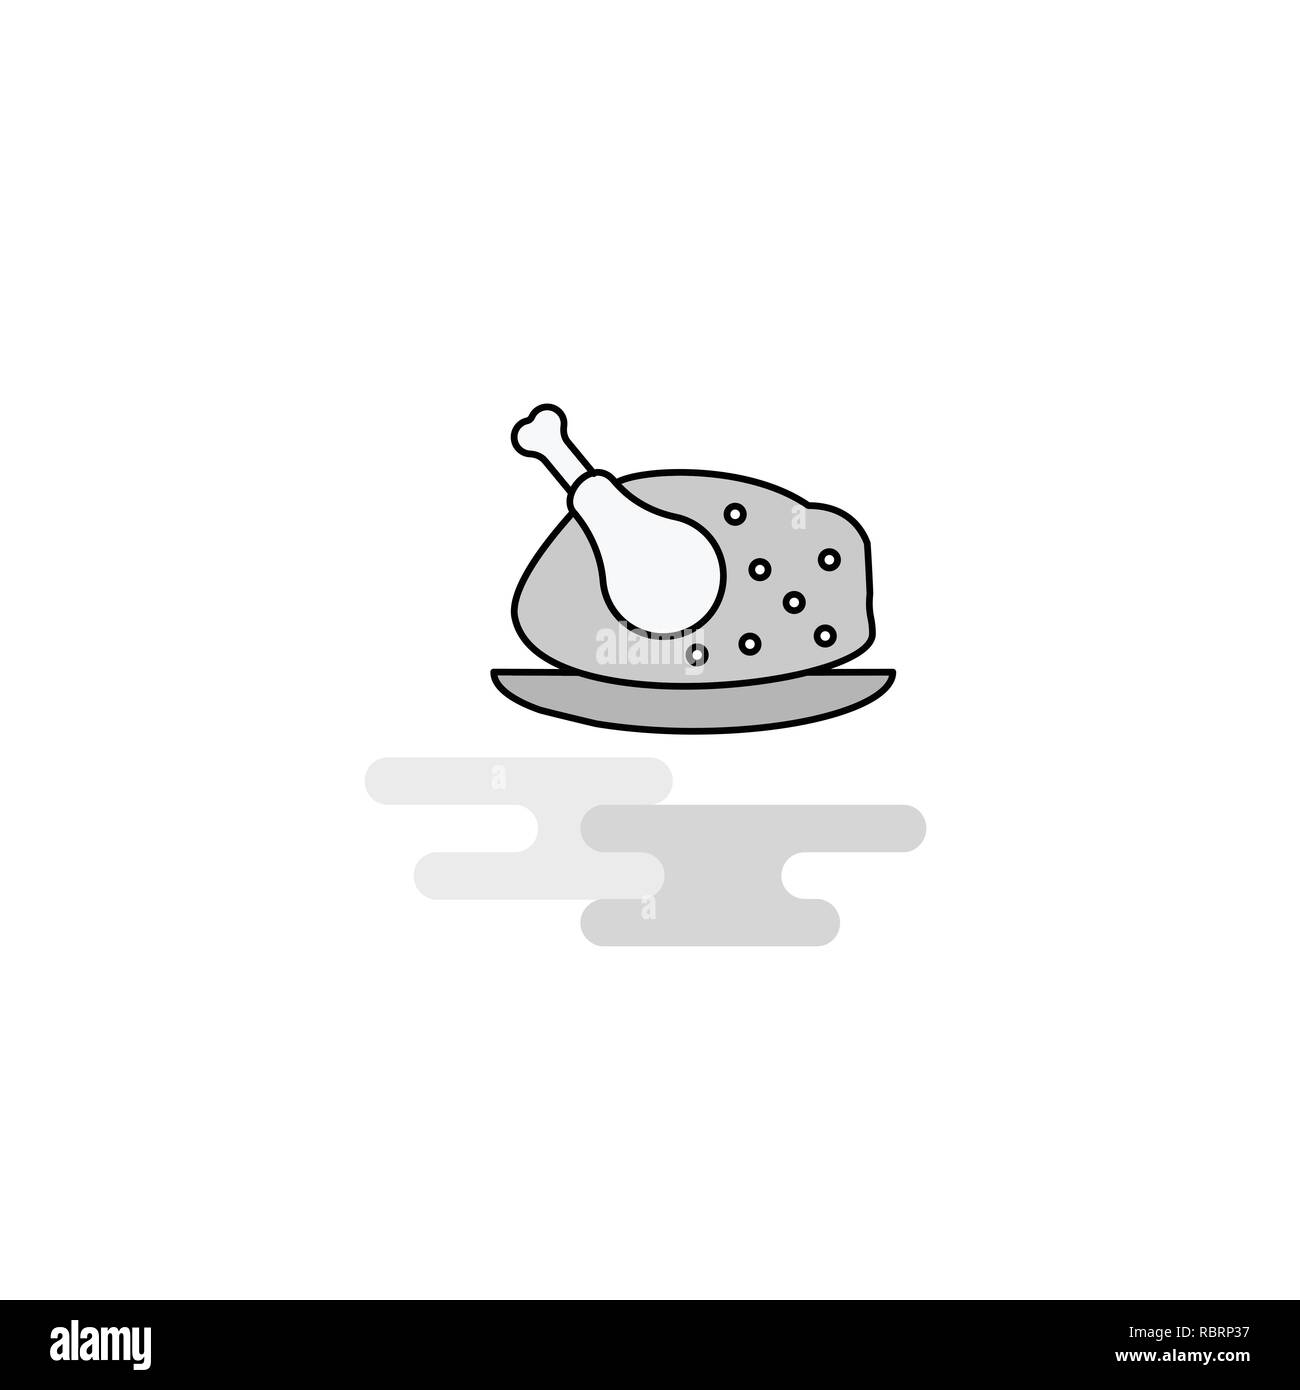 Chicken meat Web Icon. Flat Line Filled Gray Icon Vector Stock Vector